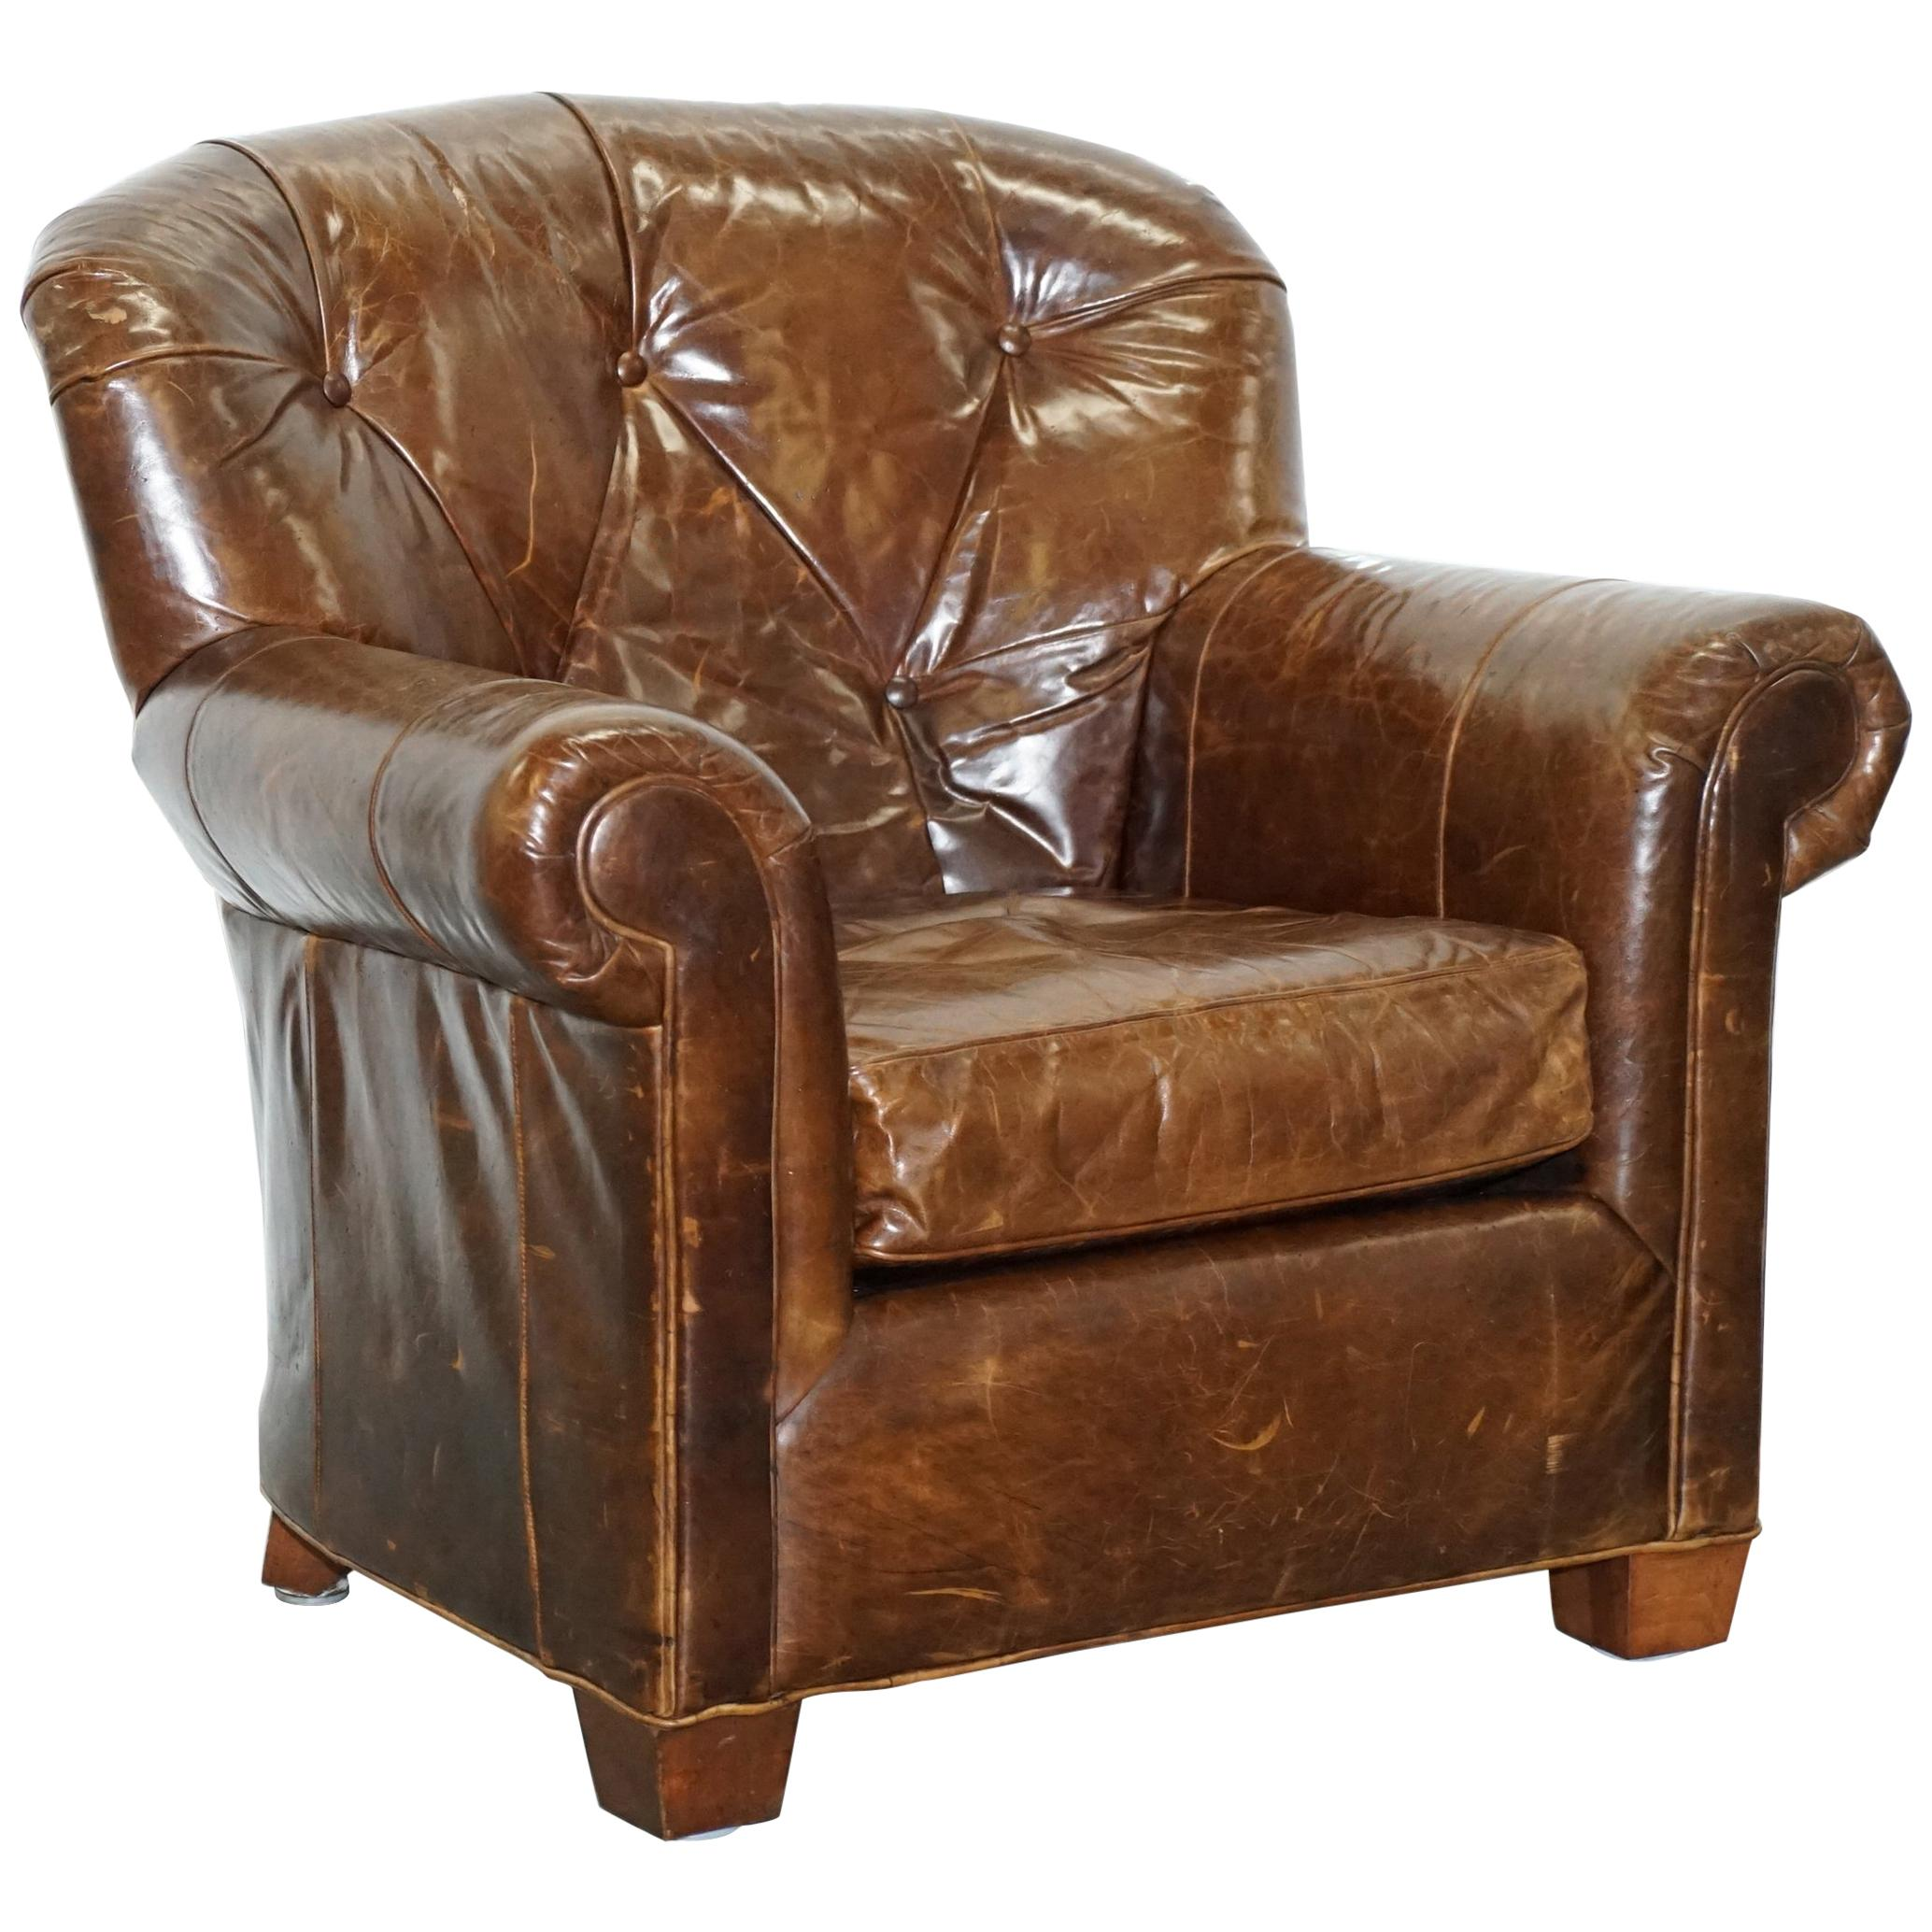 Attirant Large Vintage Aged Brown Leather Ralph Lauren Club Armchair Heritage  Upholstery